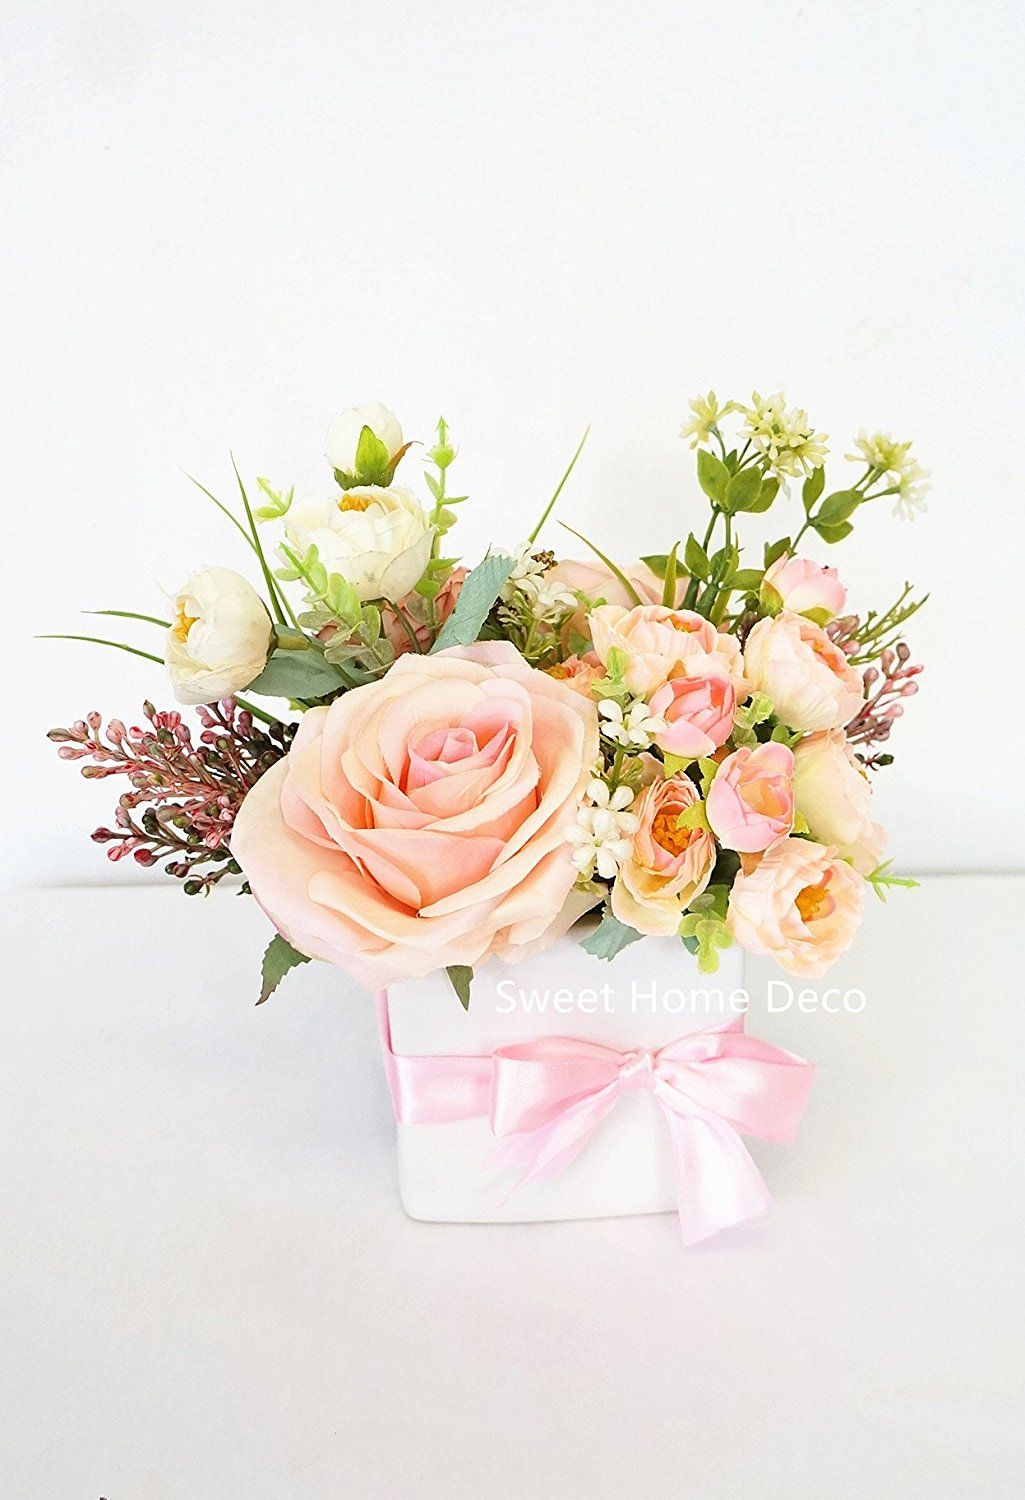 Sweet Home Deco Spring Floral Arrangment Silk Rose Fake Berry w ...